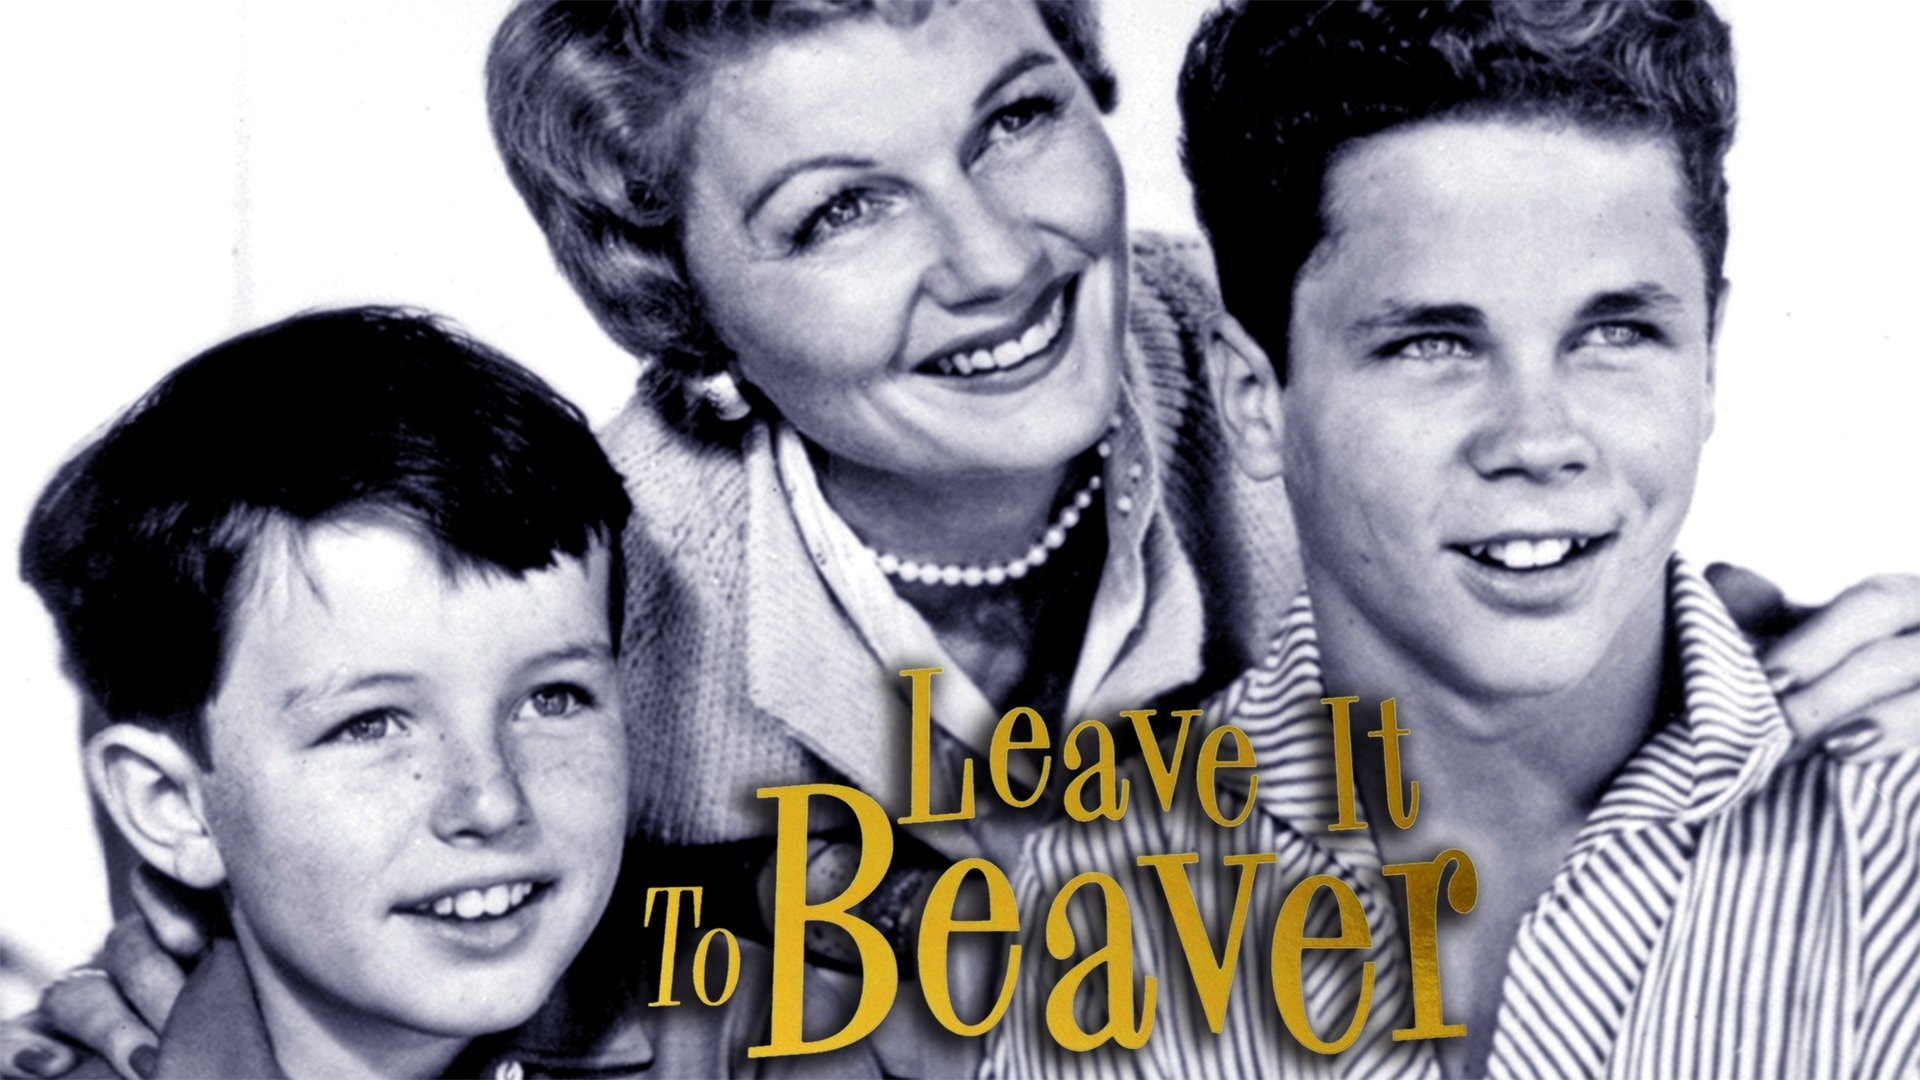 Beaver and Kenneth